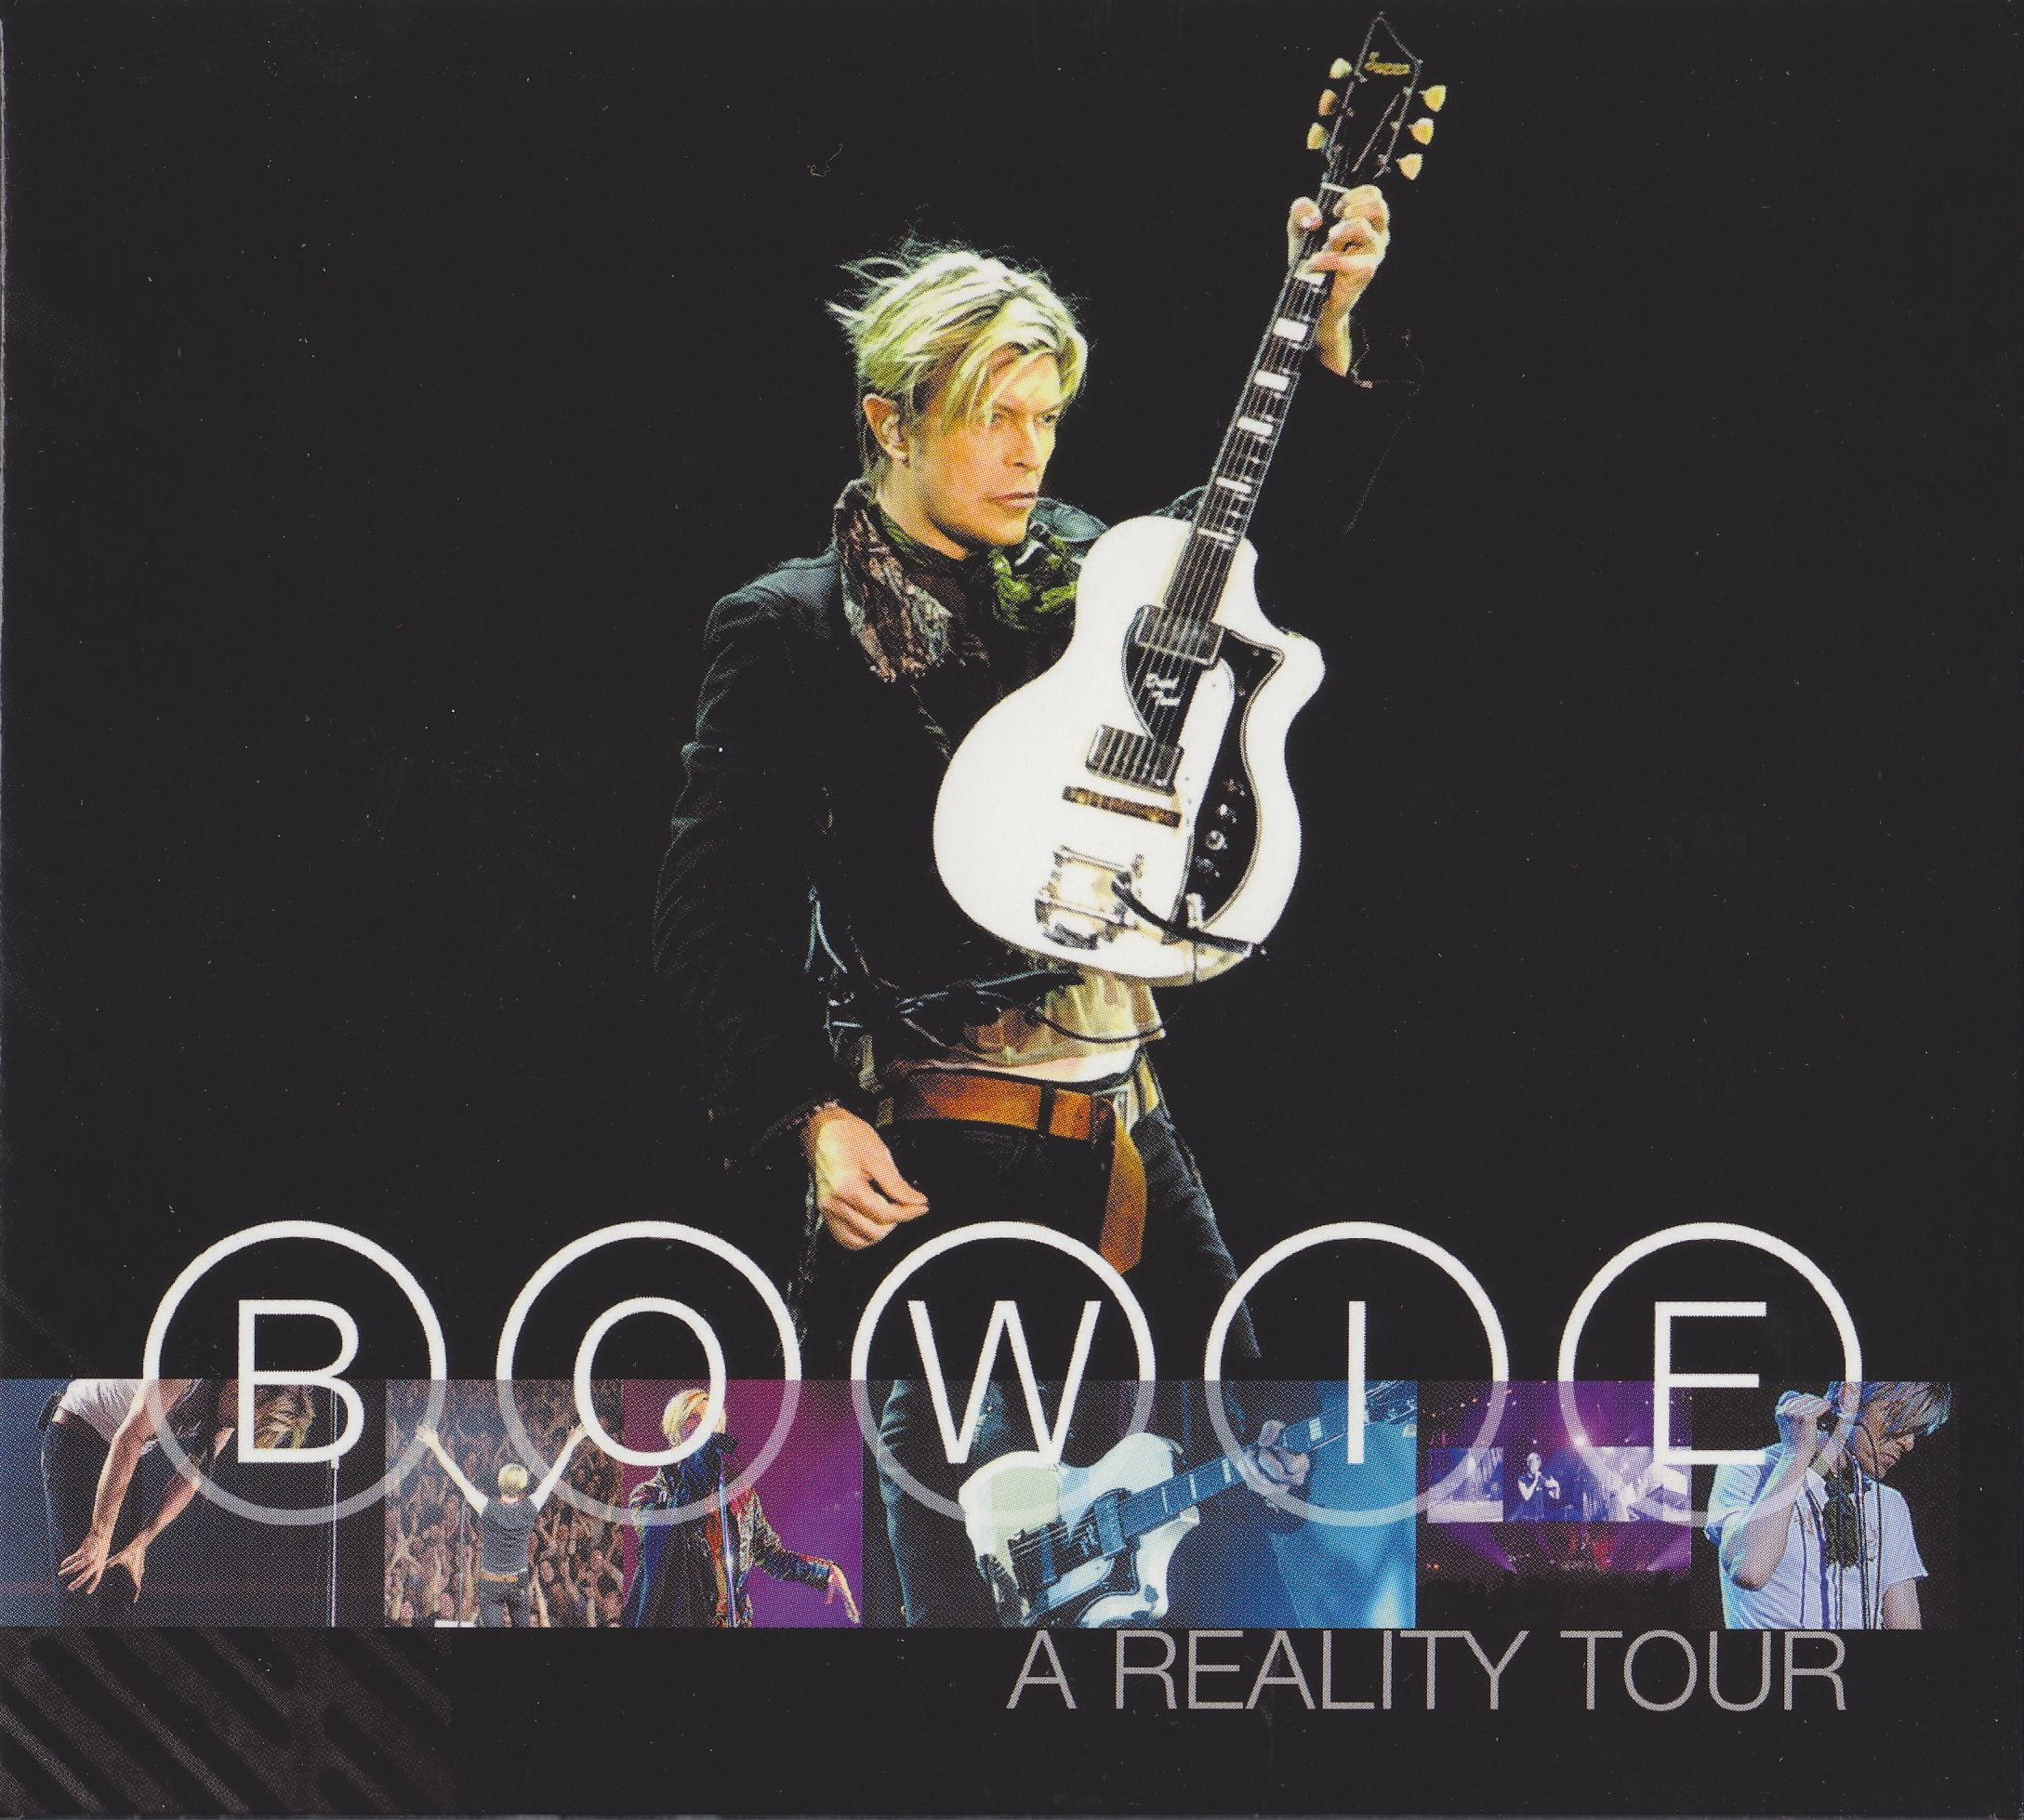 David Bowie - A Reality Tour album cover